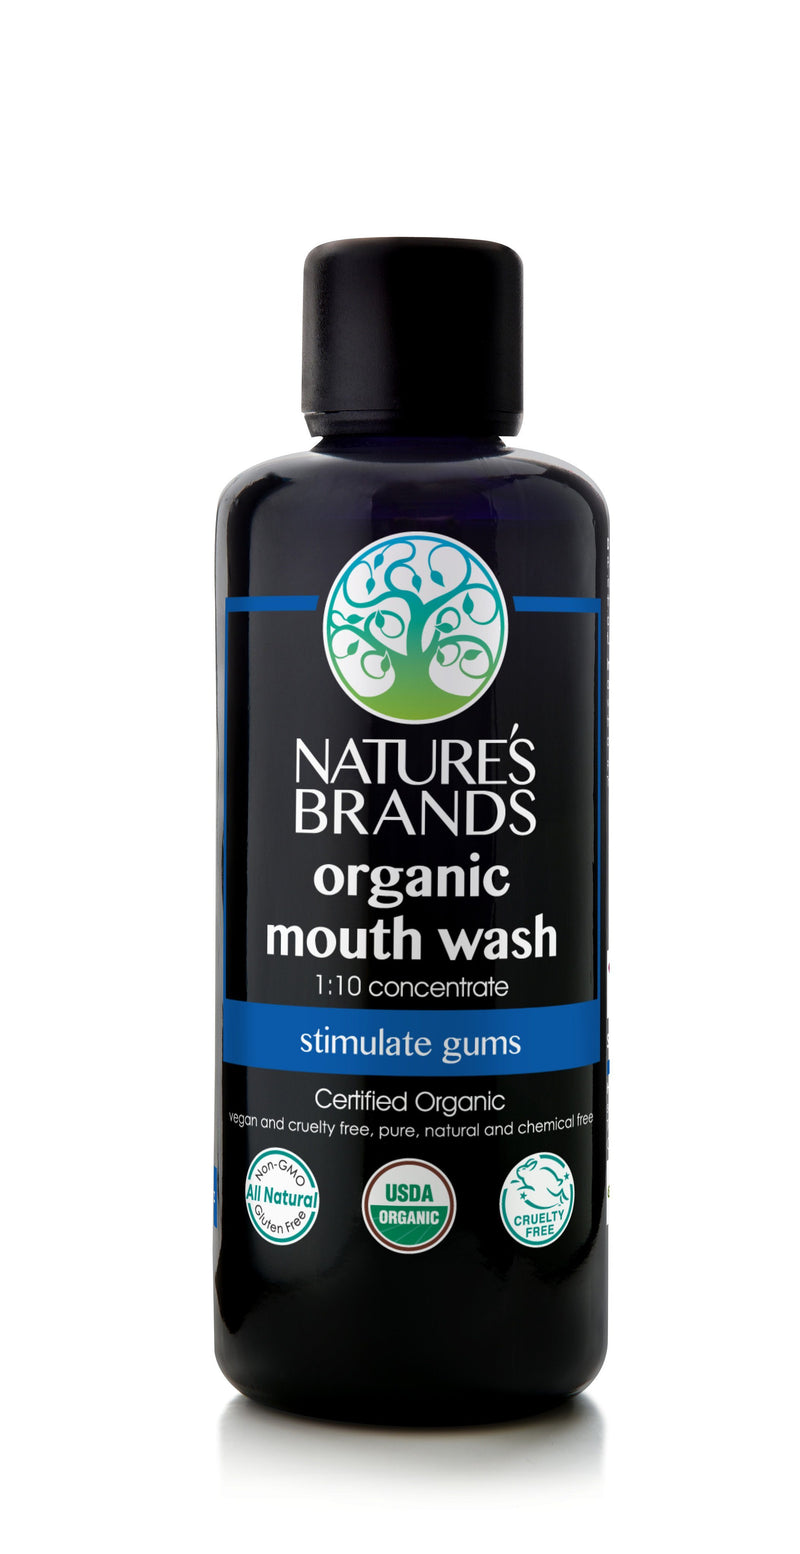 Organic Mouth Wash 1:10 Concentrate - Organic Mouth Wash 1:10 Concentrate - Small Size (100ml/3.4oz)